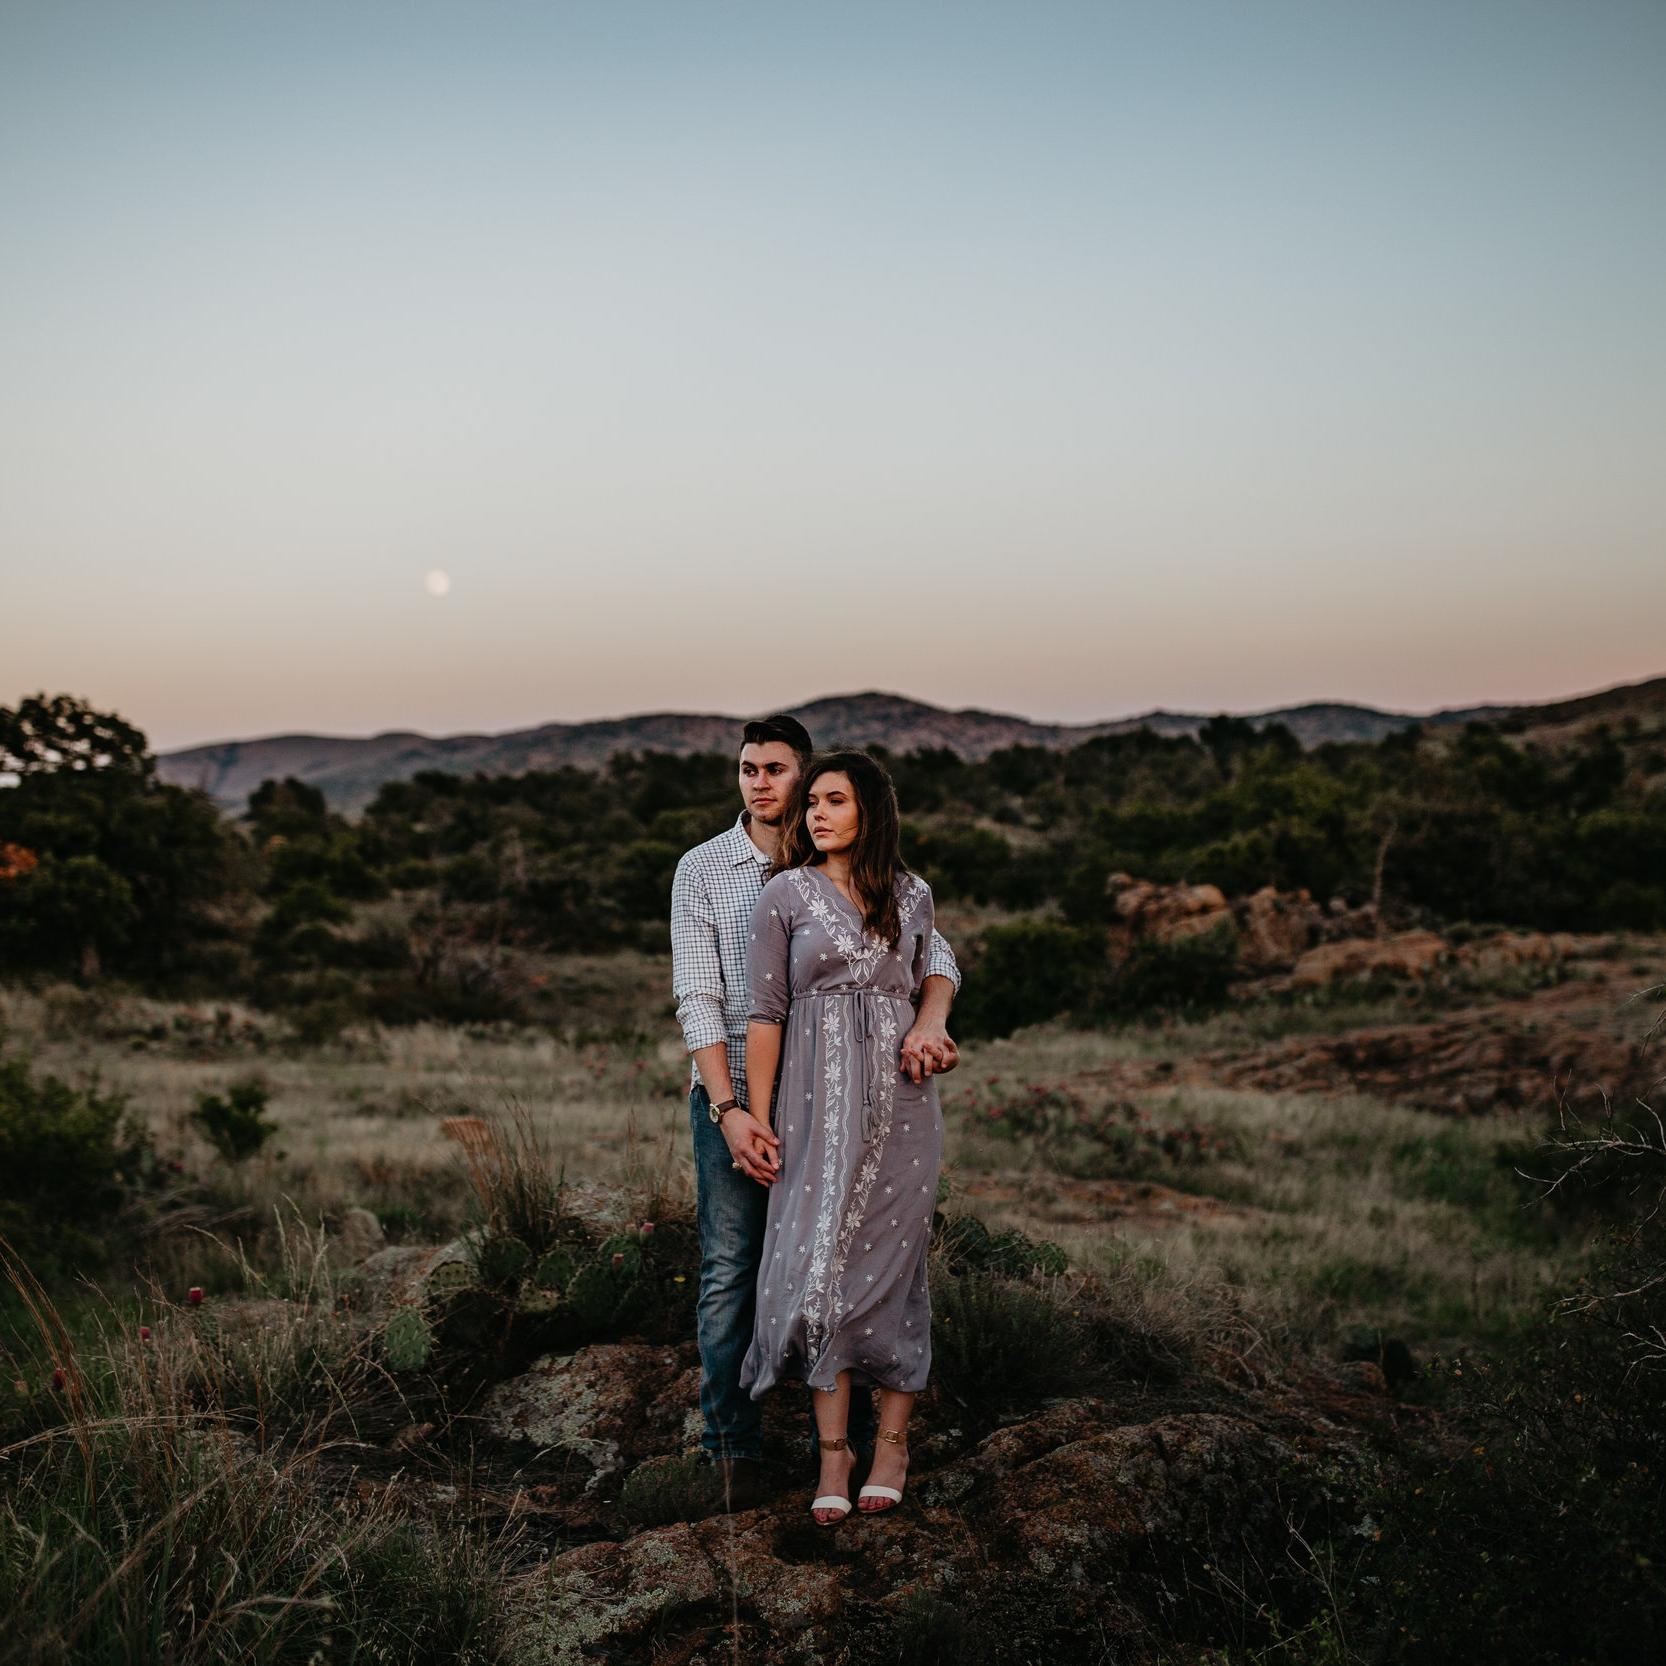 Couples | - Perfect for any couples! Newly engaged, casual in-home session, Valentine's or Birthday gift… the options are endless!$3501 Hour2+ Outfits1-2 LocationsDigital Album